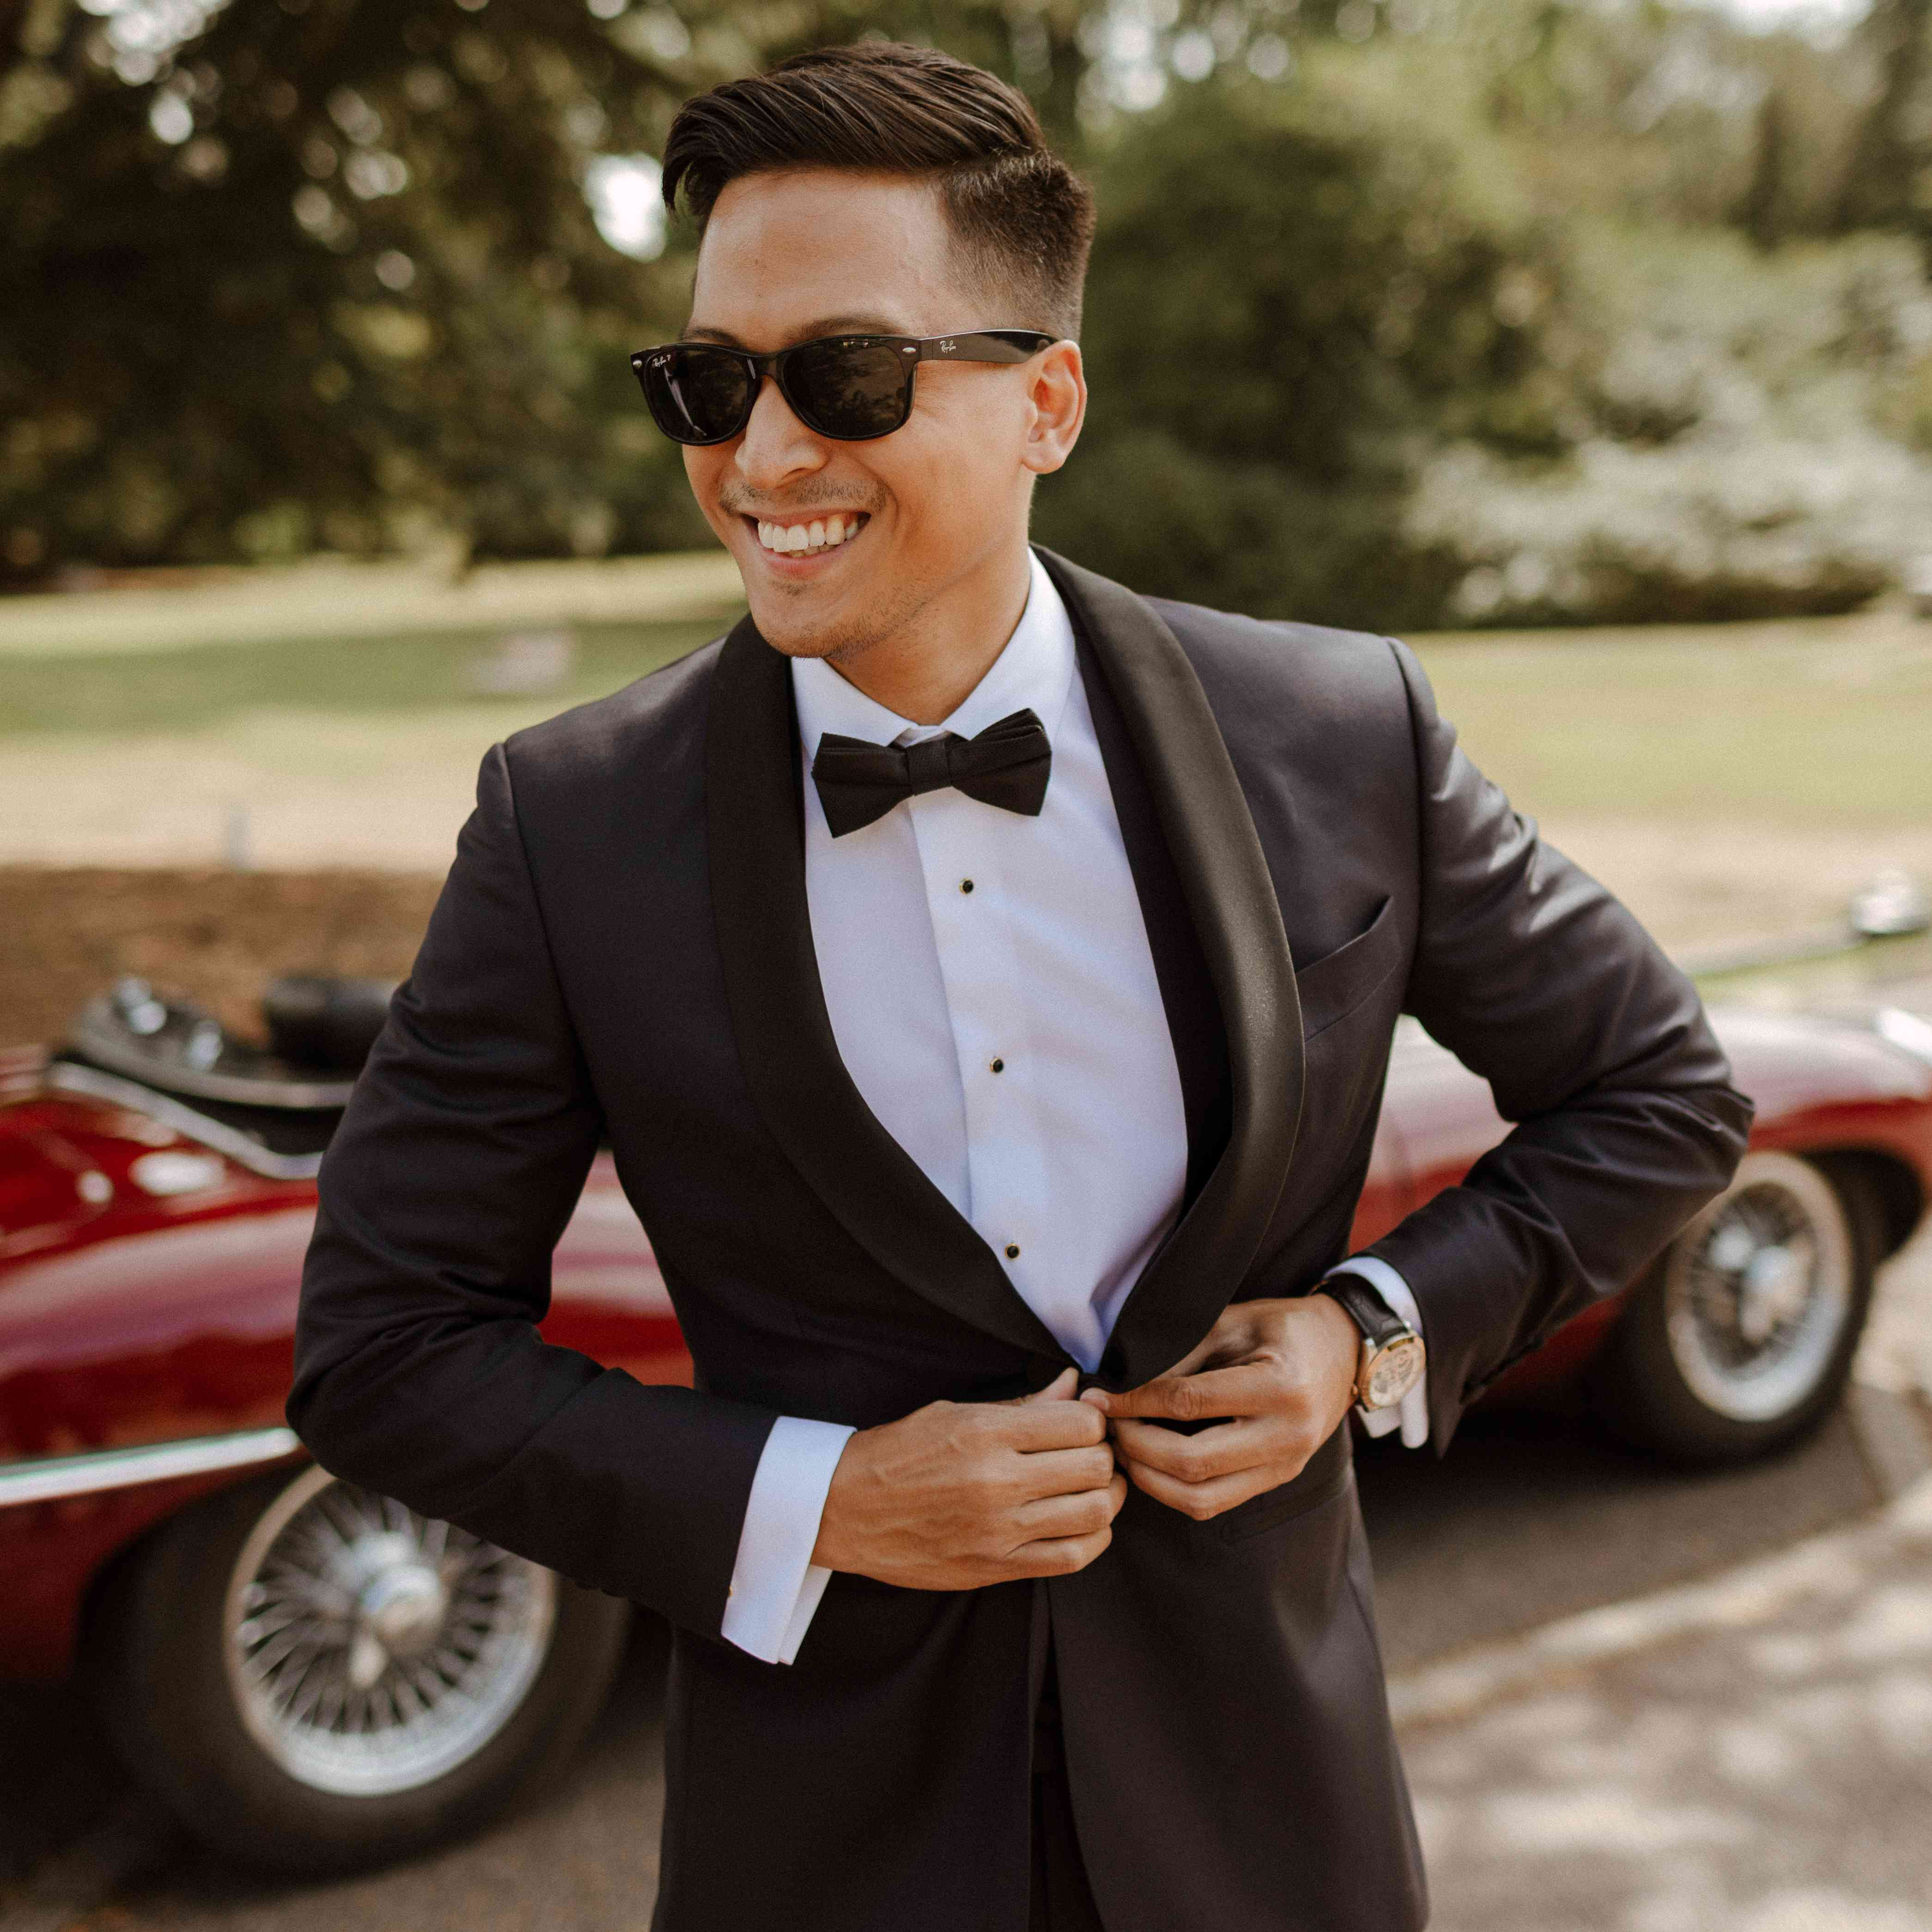 the groom with sunglasses